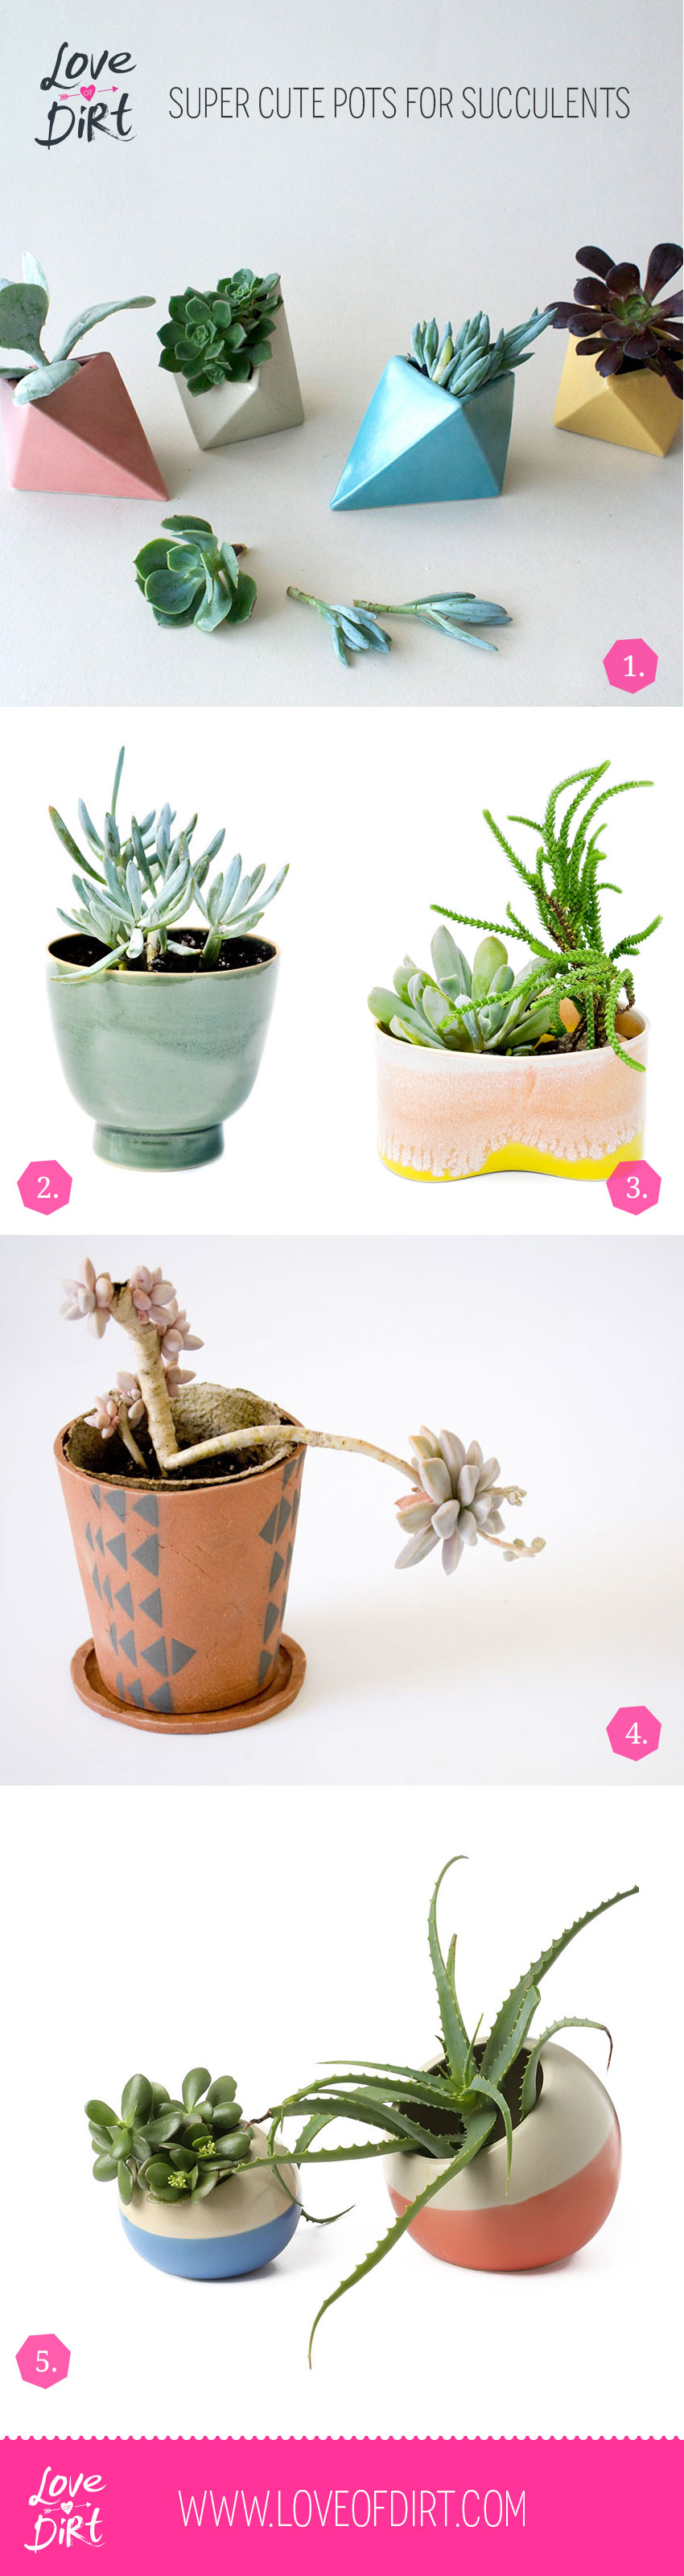 Super cute pots for succulents